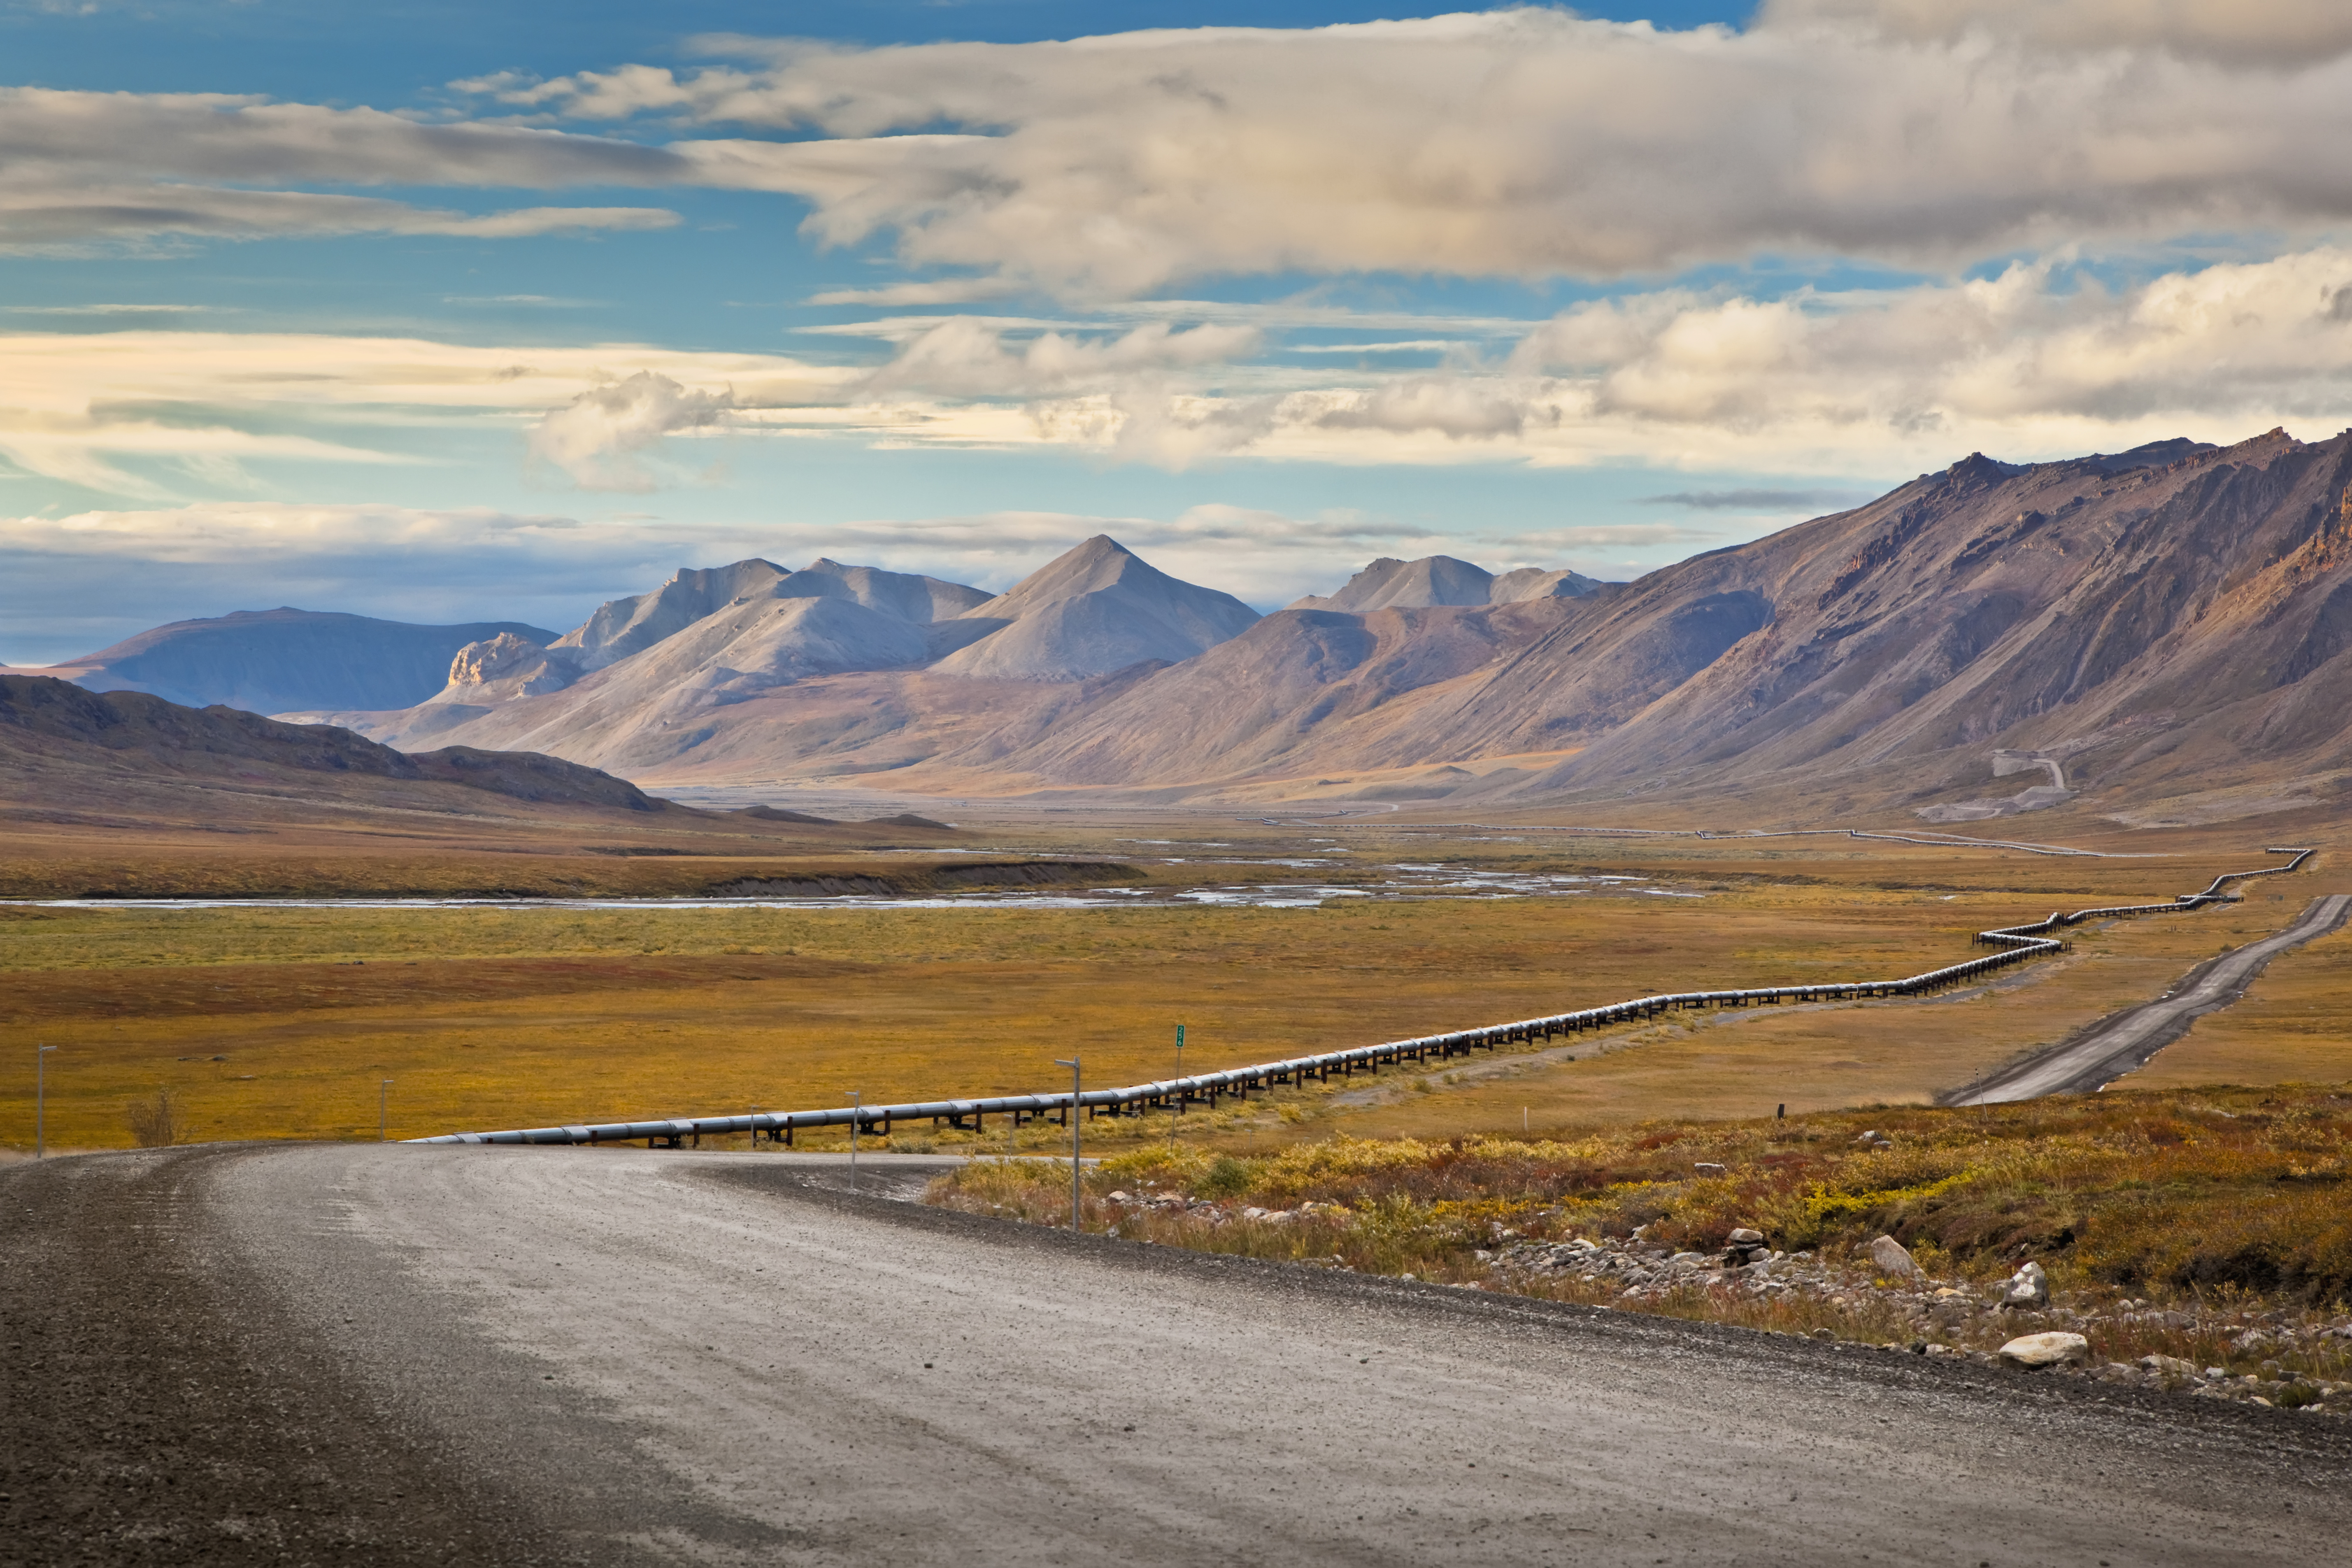 Scenic view of the Trans-Alaska Pipeline along the Dalton Highway and the Brooks Range in the background, ANWR, Arctic Alaska, Autumn